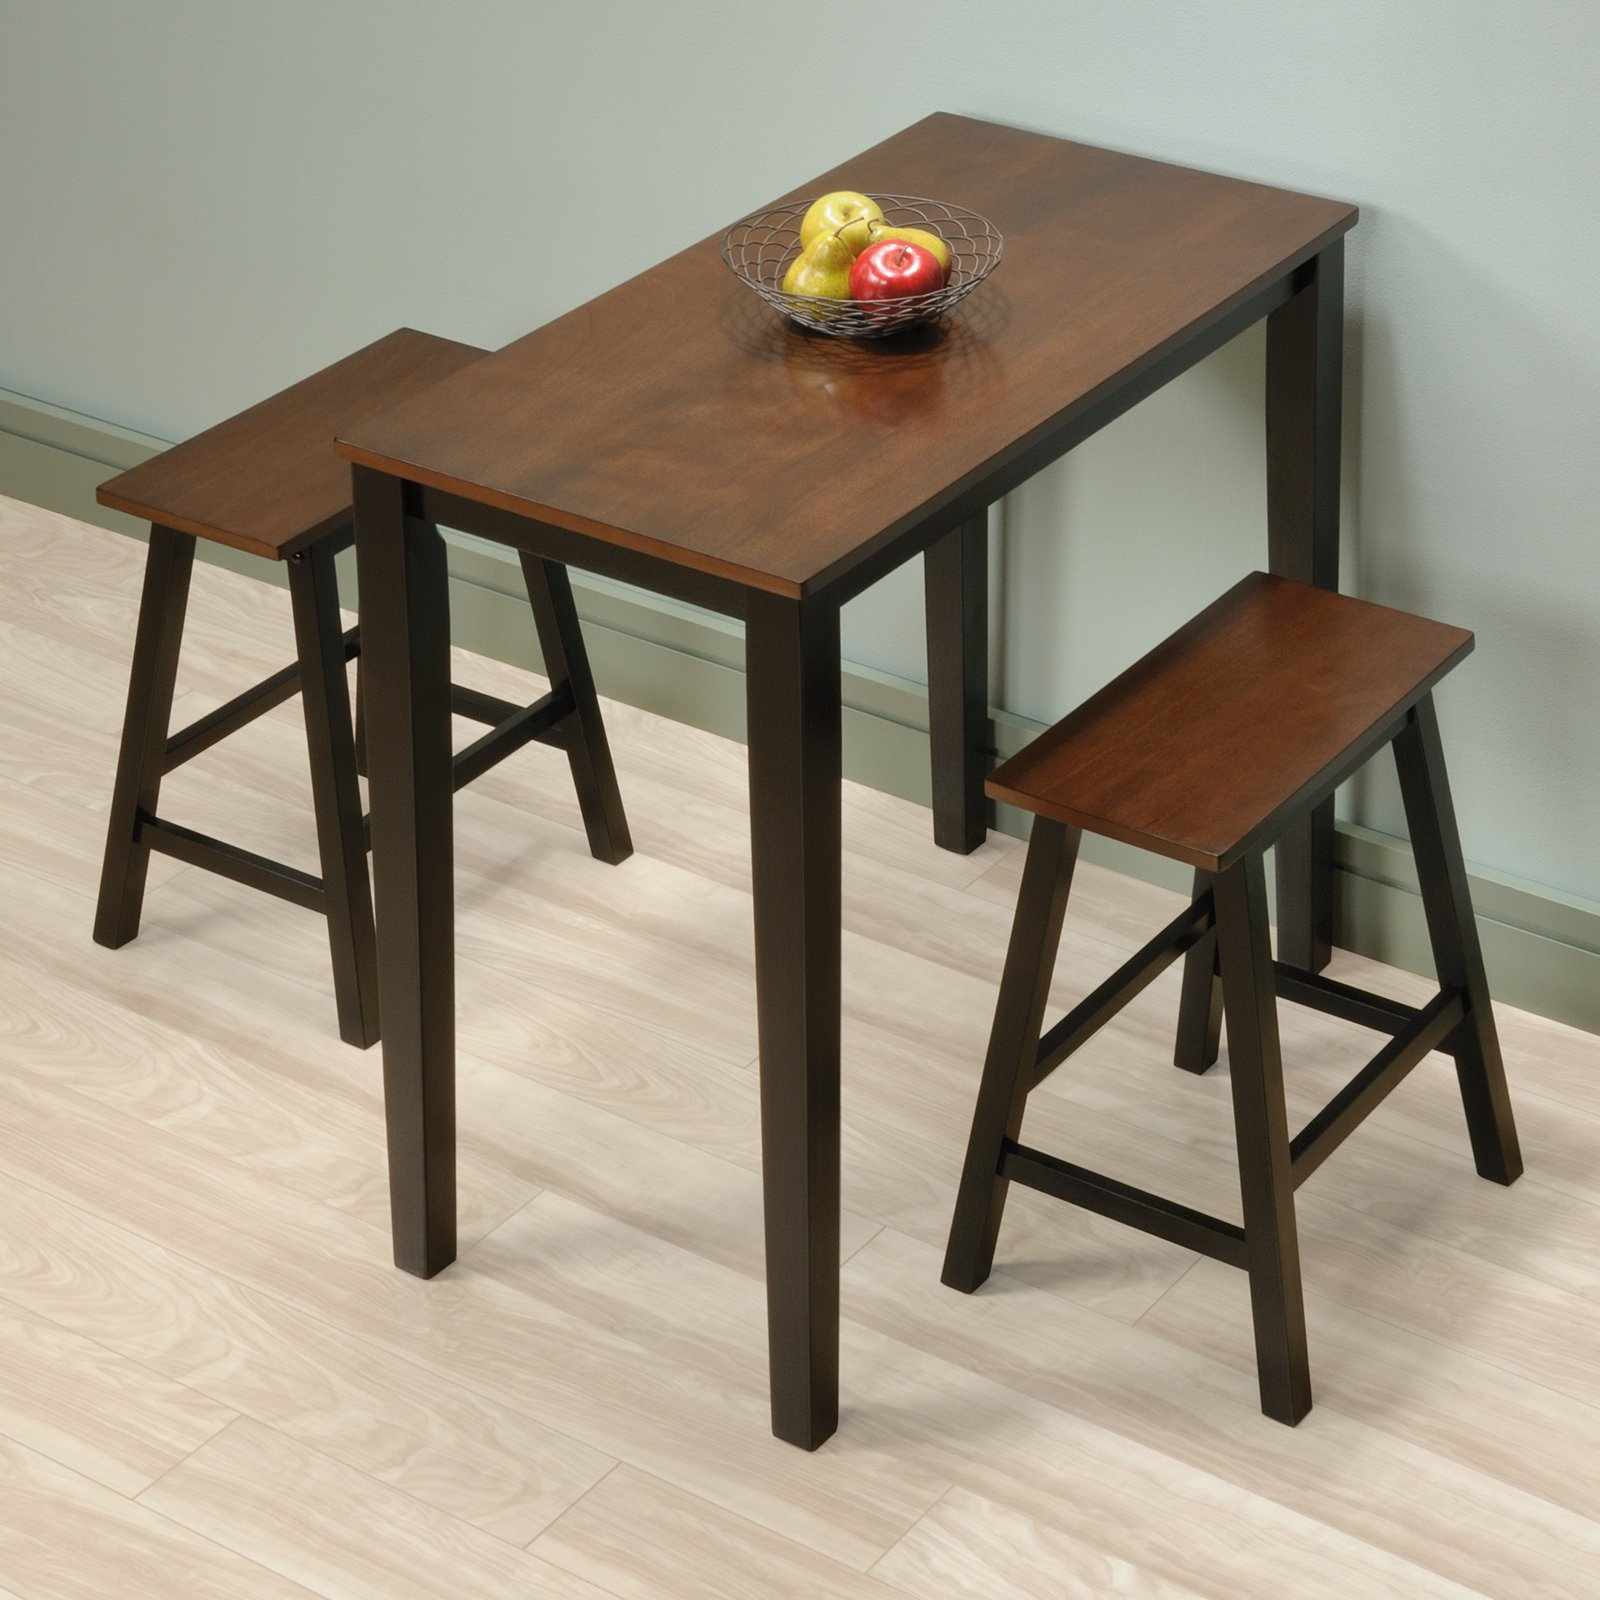 Most Recent 3 Piece Dining Sets Intended For Sauder Beginnings 3 Piece Counter Height Dining Set, Cherry Finish (View 16 of 20)